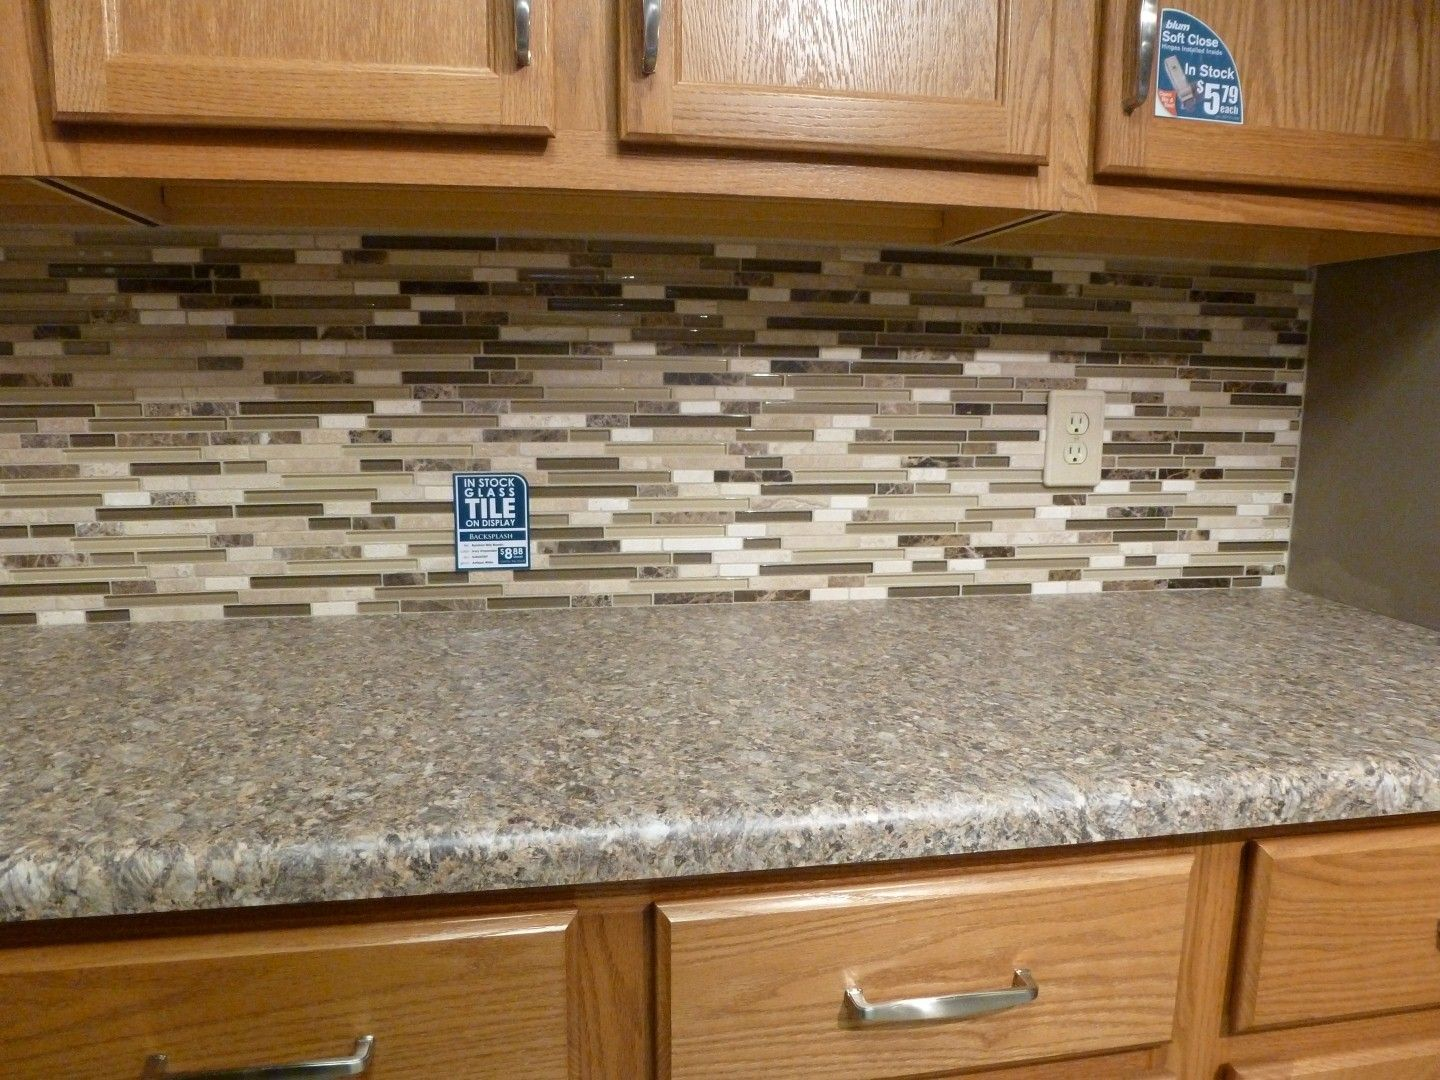 Uncategorized Mosaic Tiles Backsplash Kitchen mosaic kitchen tile backsplash ideas 2565 baytownkitchen baytownkitchen